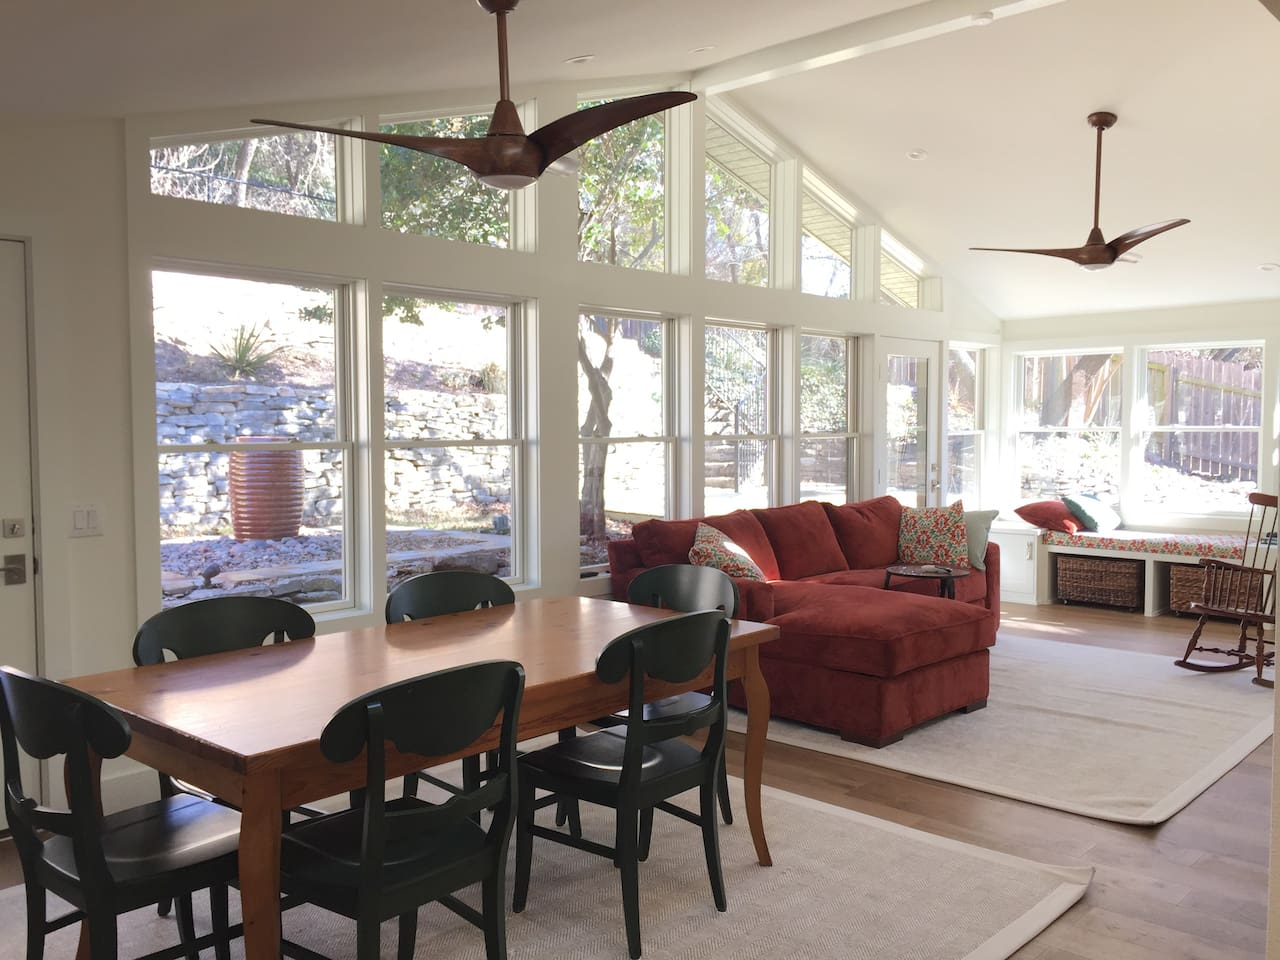 The sunroom, with wall to wall windows, is a lovely place to sip coffee while watching the birds on the feeder outsider.